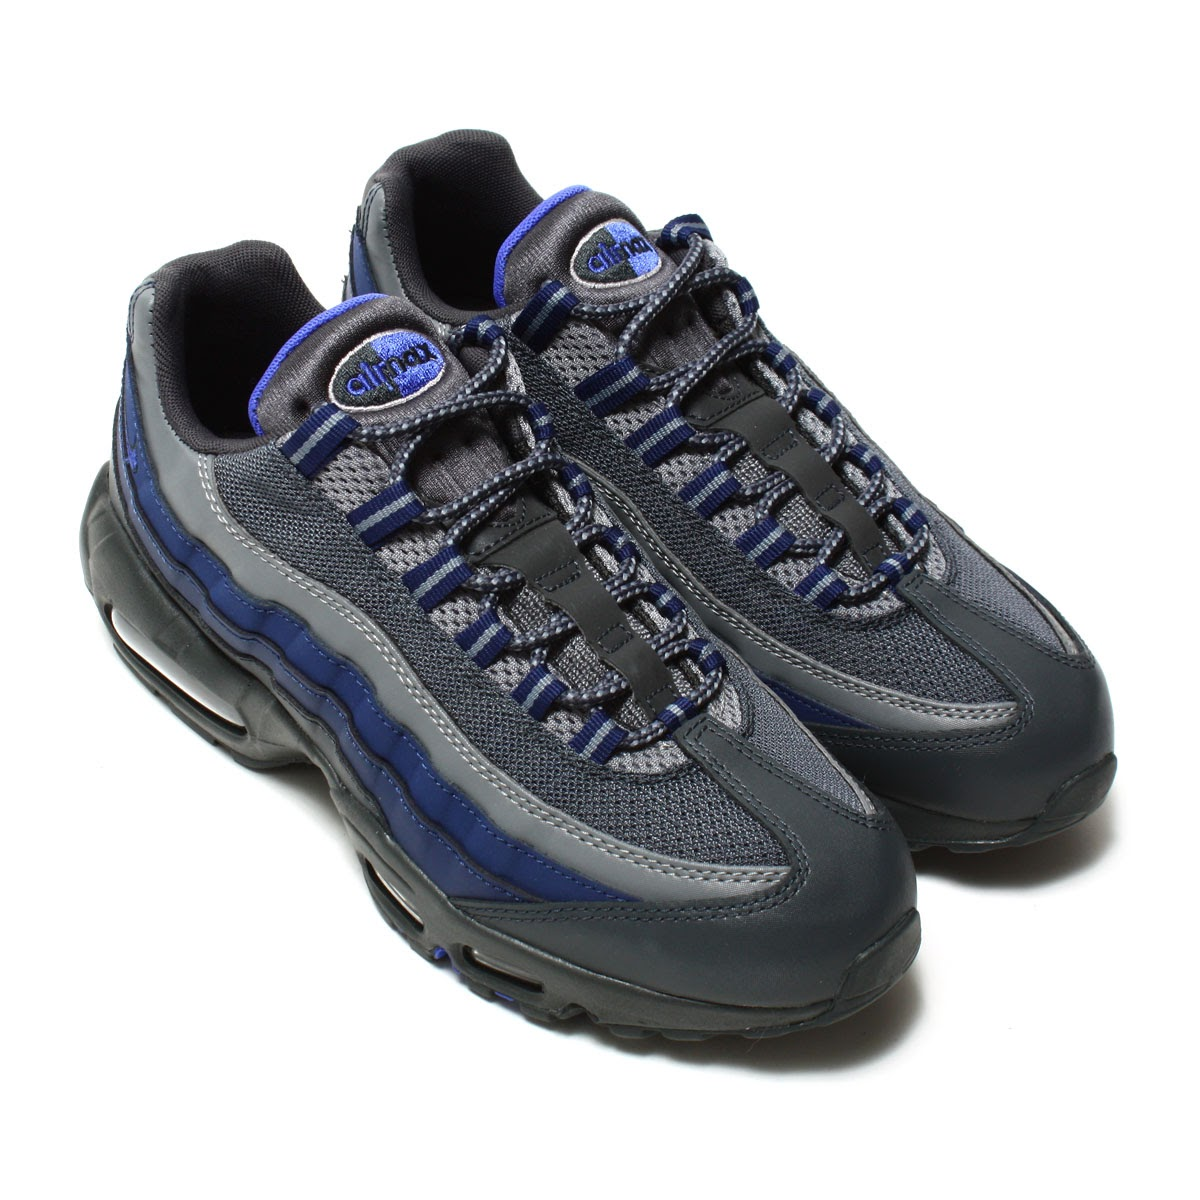 NIKE AIR MAX 95 ESSENTIAL (ナイキ エア マックス 95 エッセンシャル) (ANTHRACITE/PARAMOUNT  BLUE-BINARY BLUE-COOL GREY-WOLF GREY)